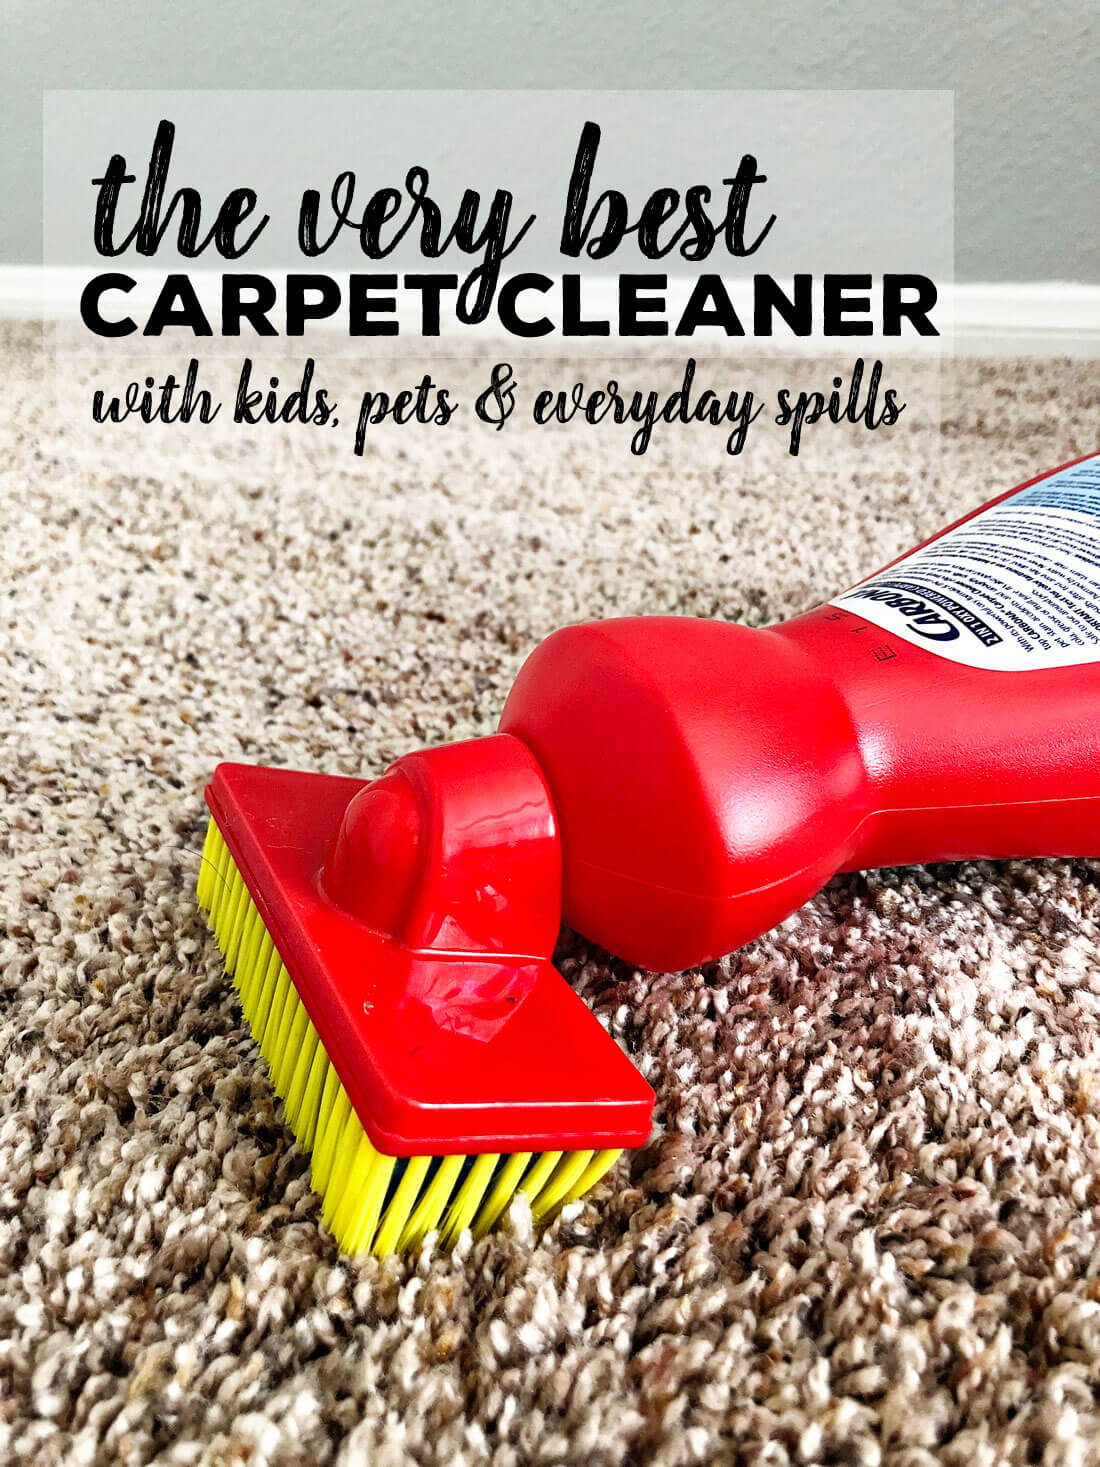 the very best carpet cleaner to use with kids, pets and for every day